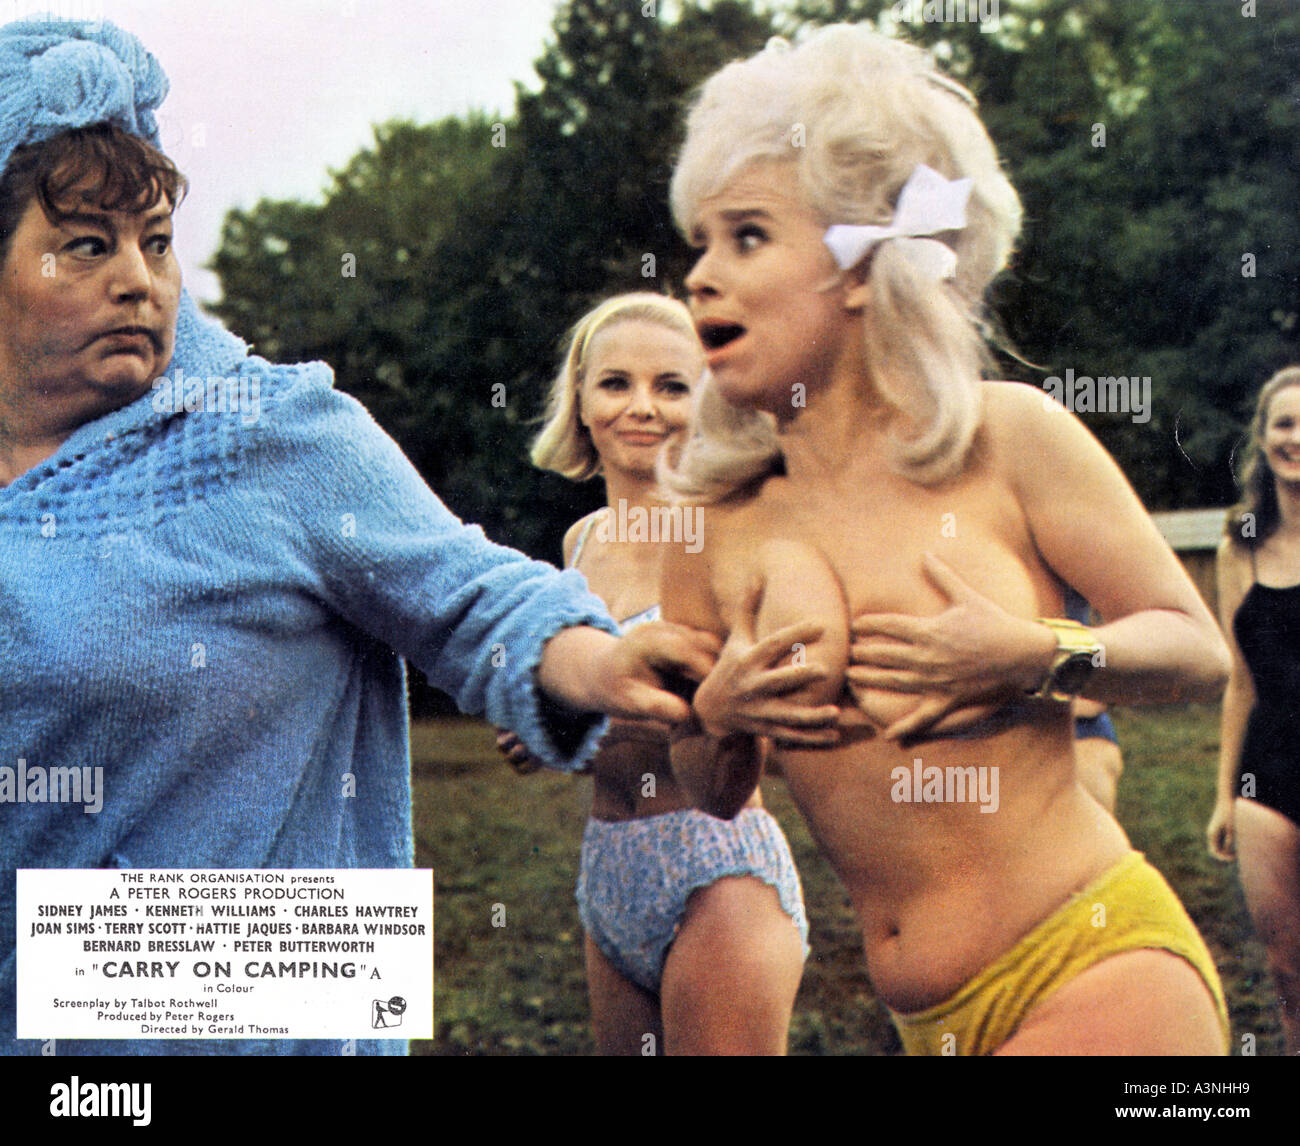 Carry On Camping Barbara Windsor High Resolution Stock Photography and  Images - Alamy